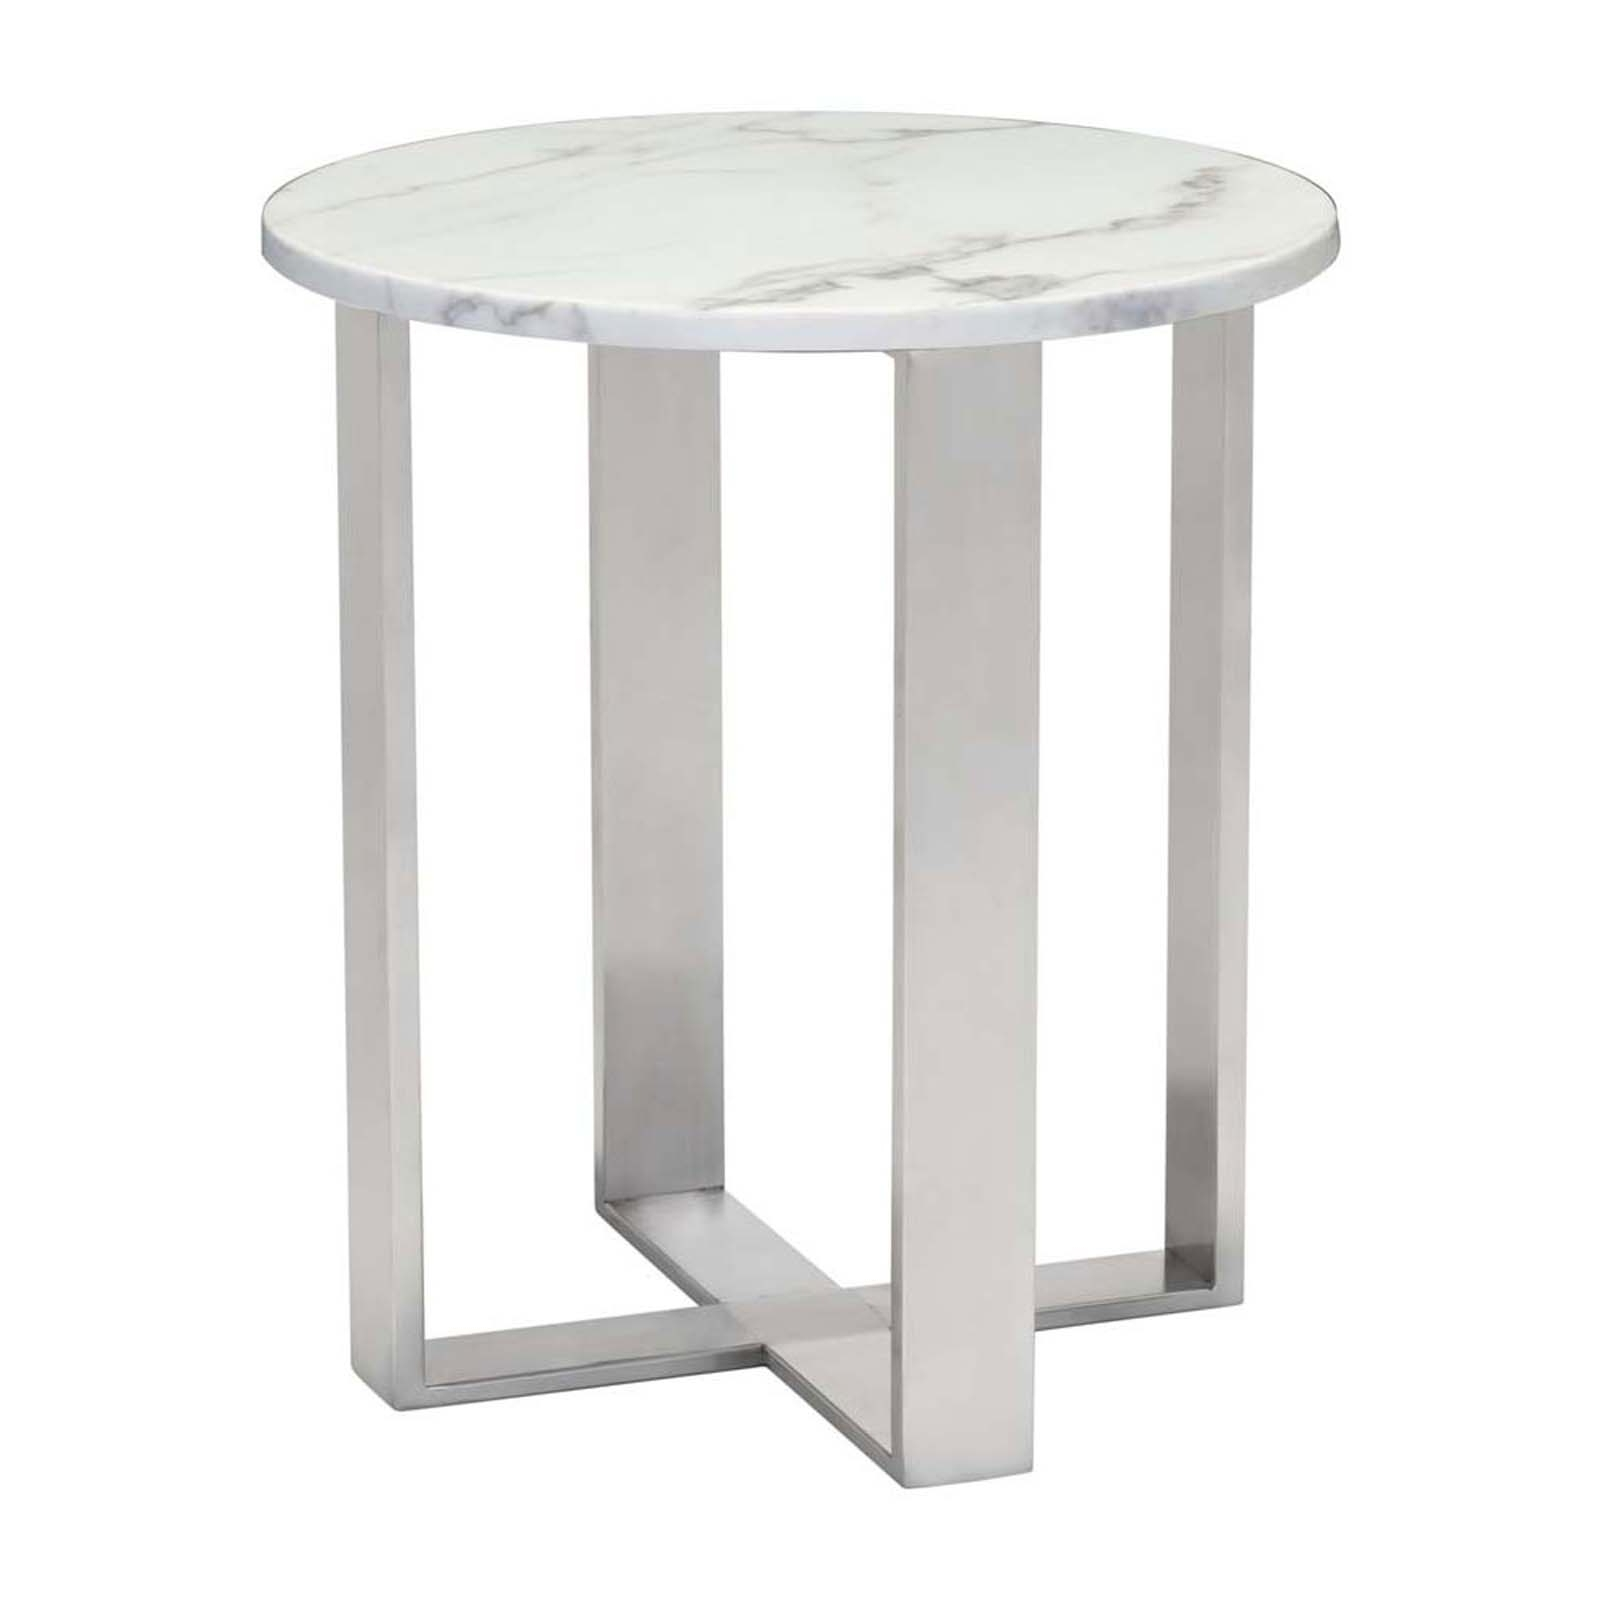 Side Tables Intended For Most Popular Broll Coffee Tables (View 15 of 20)